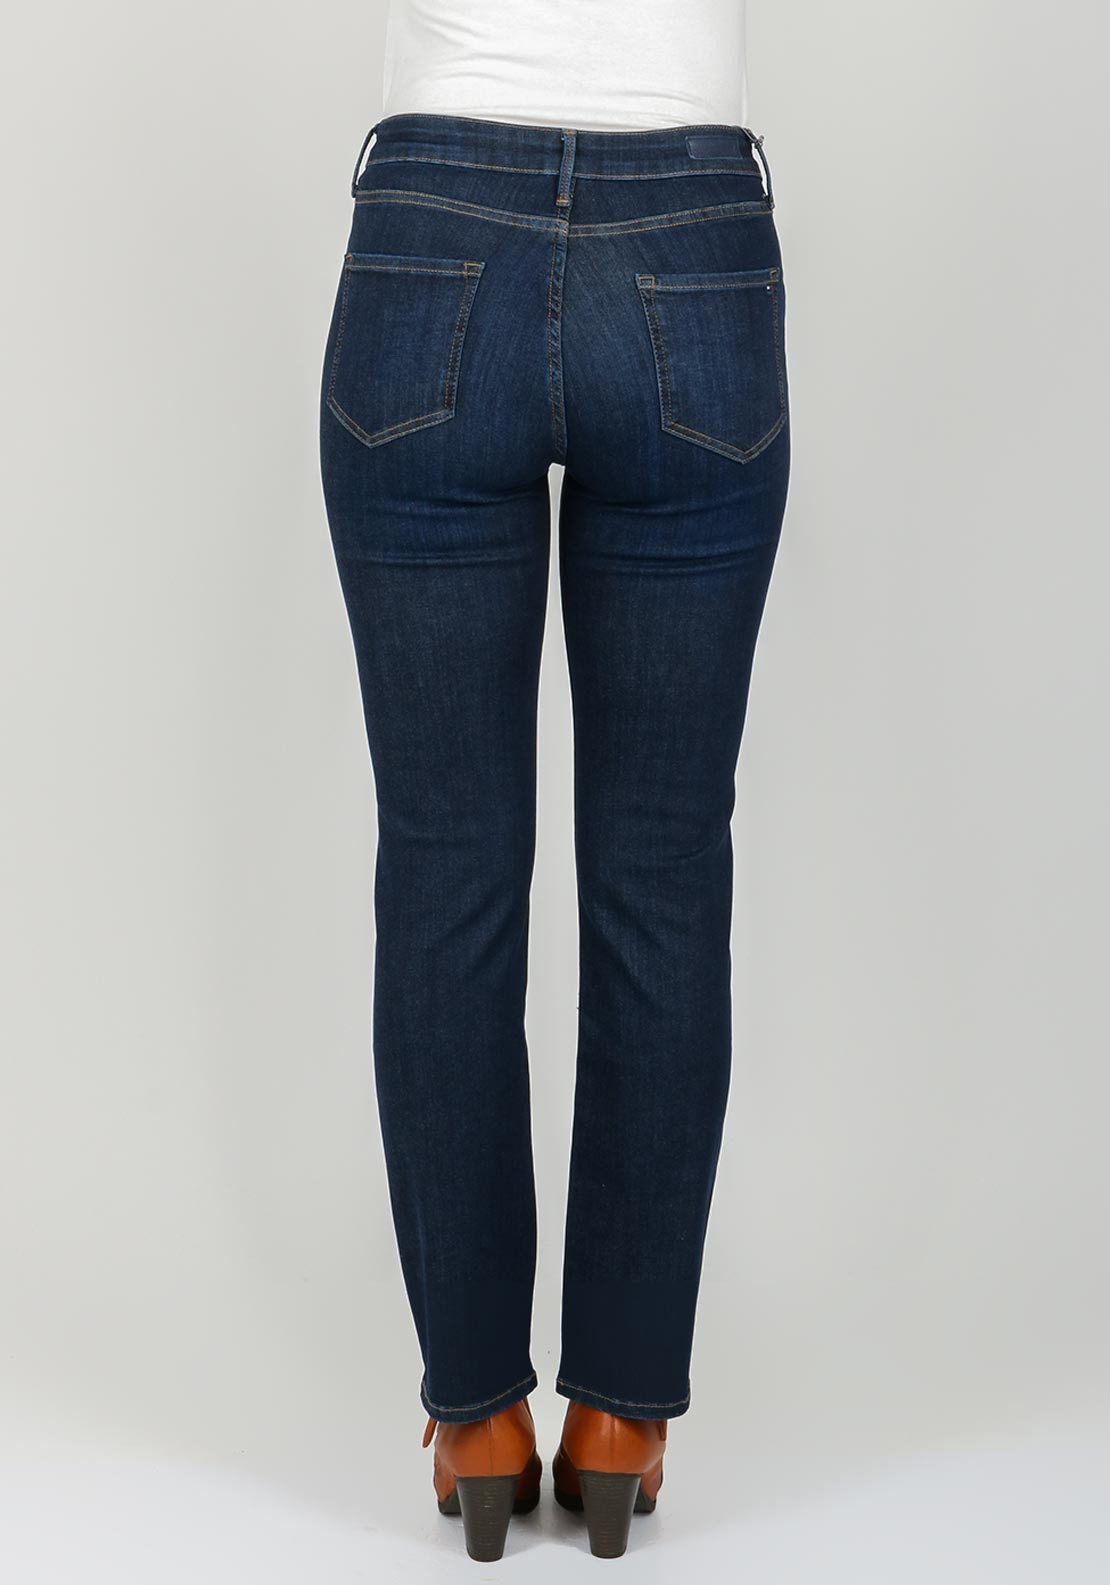 c607cf288 Tommy Hilfiger Womens Lisbon Straight Jeans, Navy. Be the first to review  this product